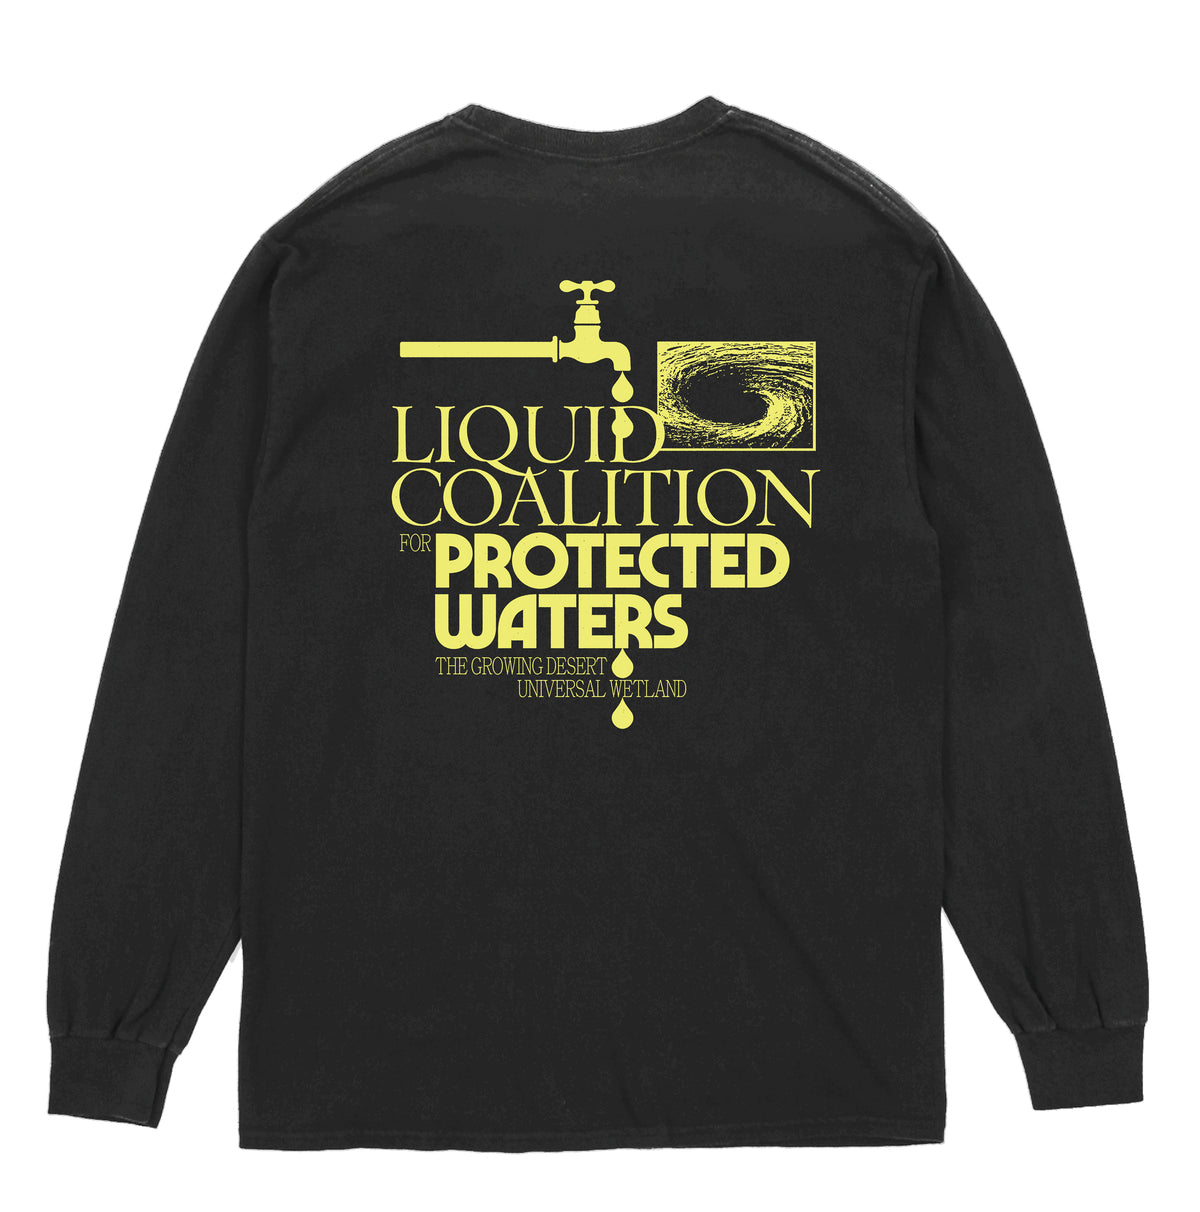 WHOLESALE LIQUID COALITION FOR PROTECTED WATERS - L/S TEE - BLACK